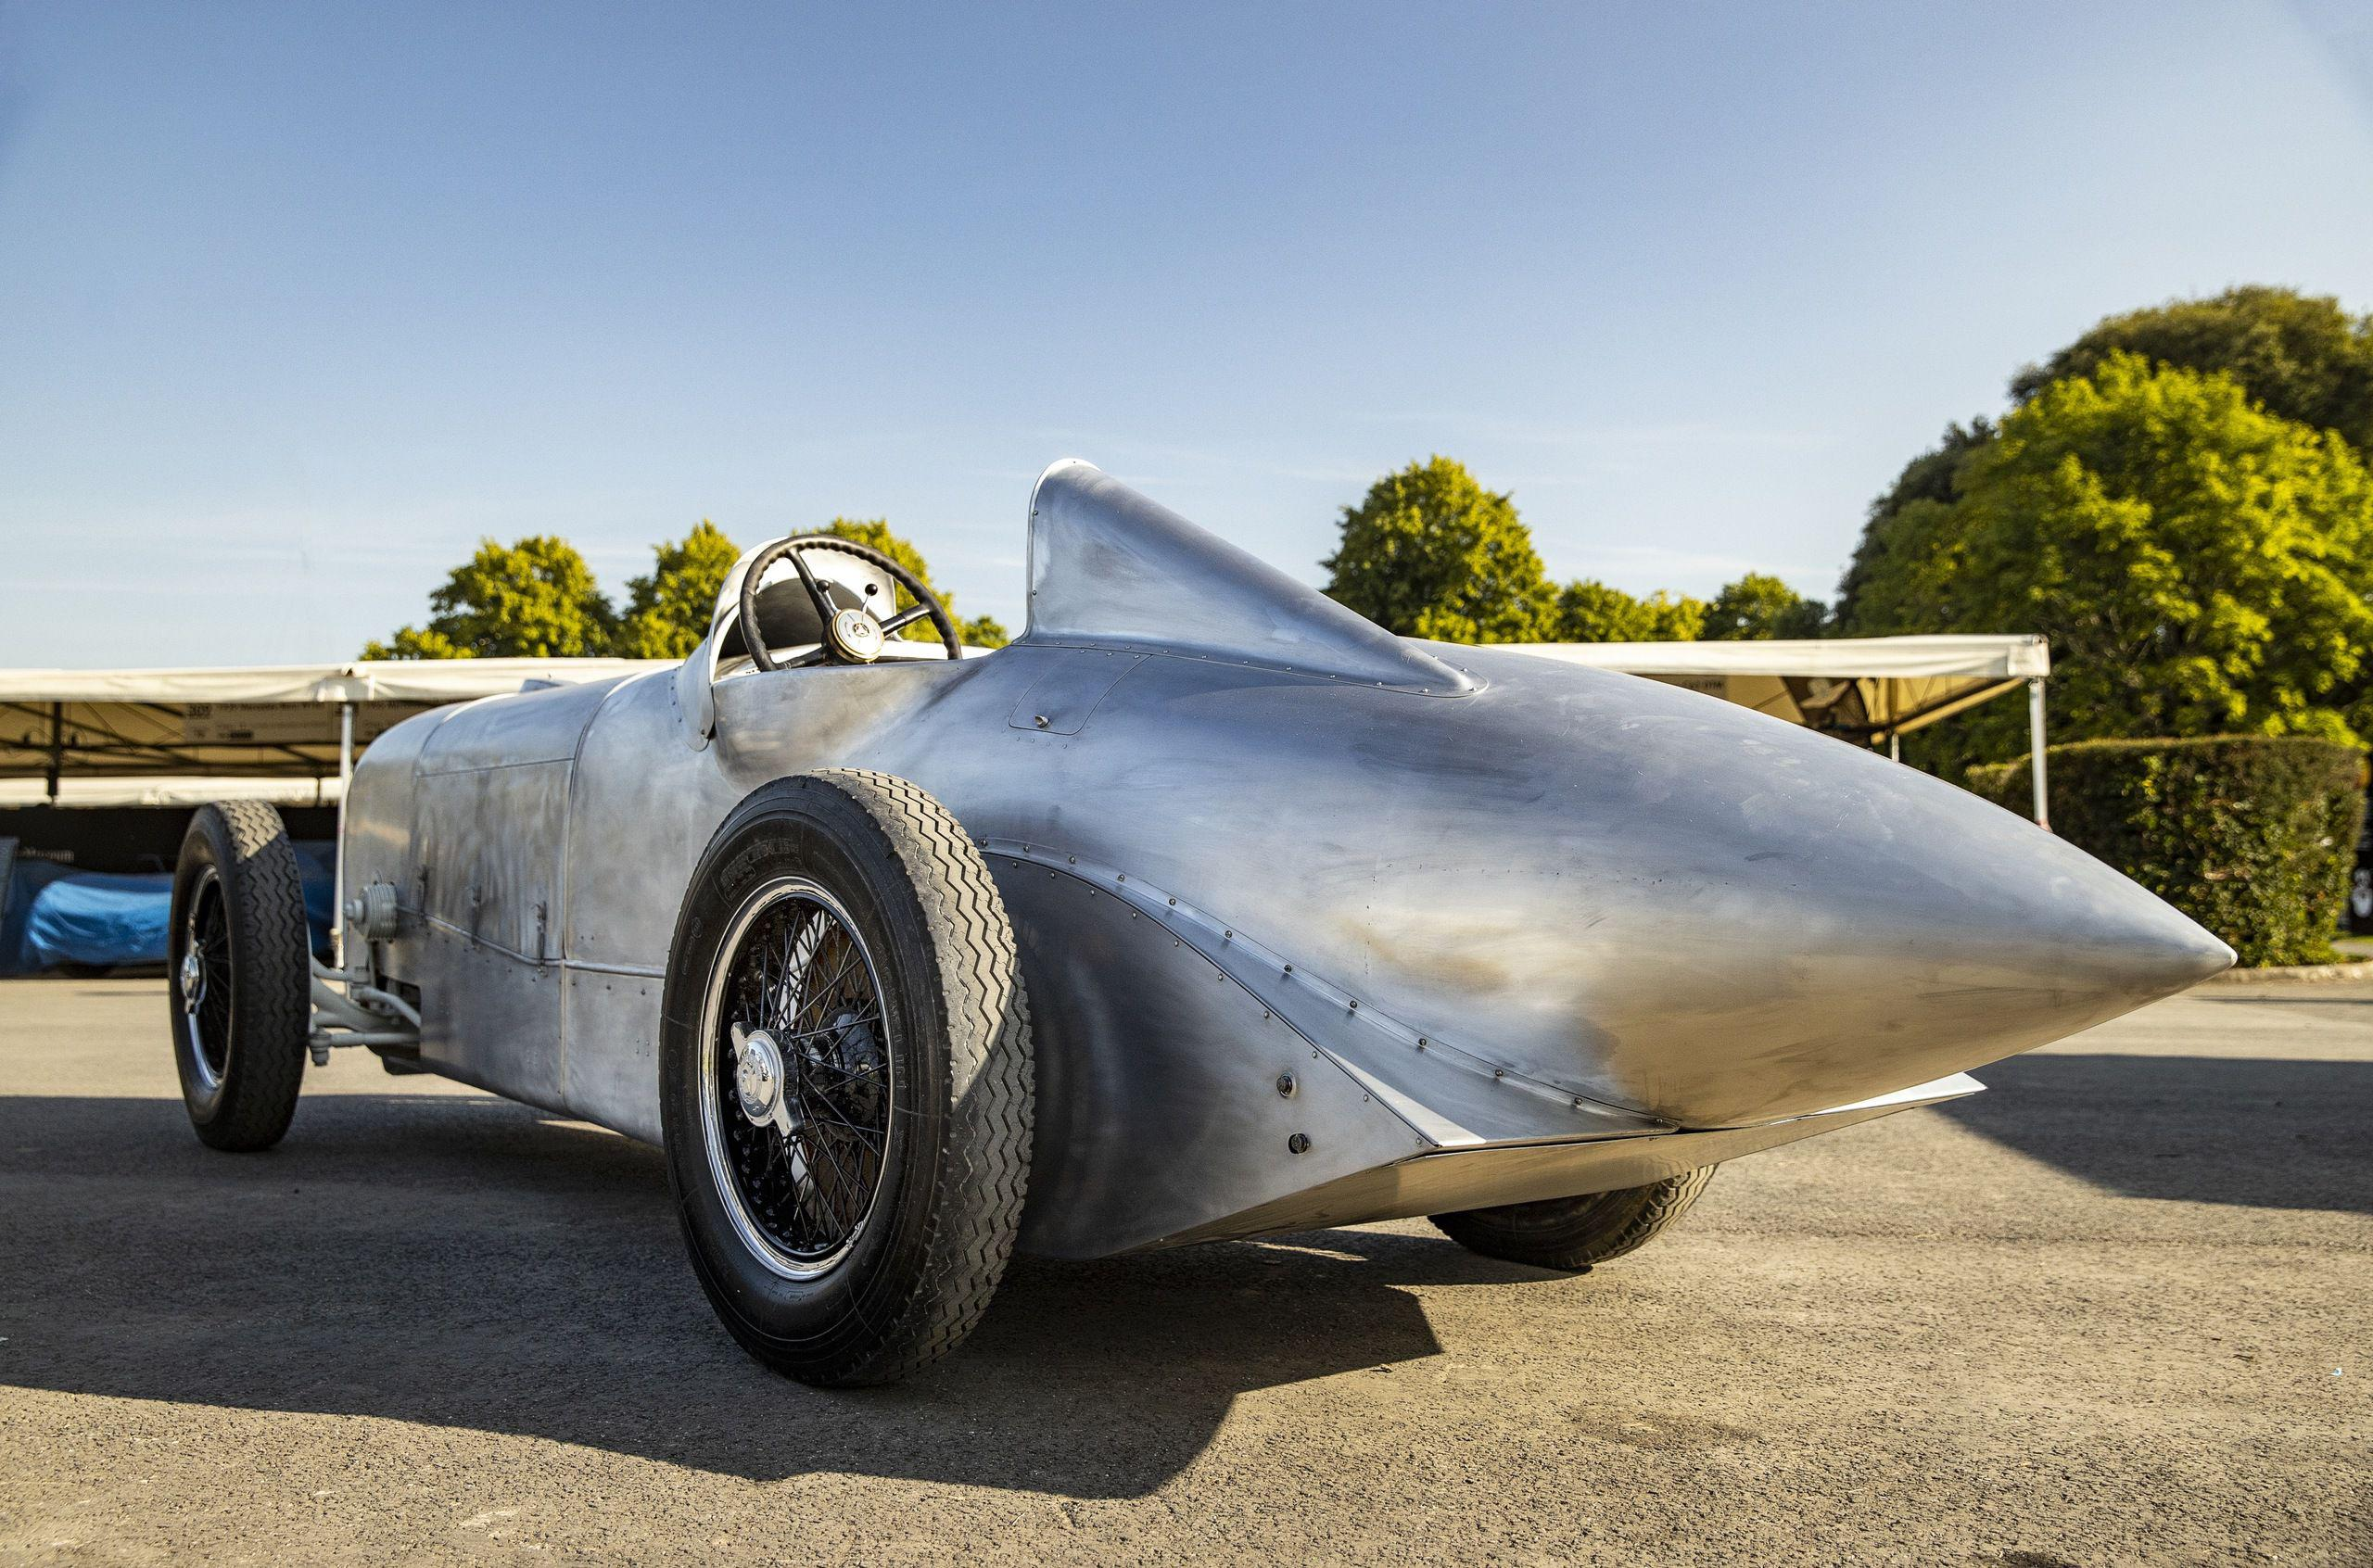 Mercedes-Benz Classic, vintage car restoration department of the German automotive giant, has come to the recently concluded Pebble Beach Concours d'Elegance with a 1932 SSKL sports car dubbed 'The Cucumber' by racing driver Manfred von Brauchitsch.